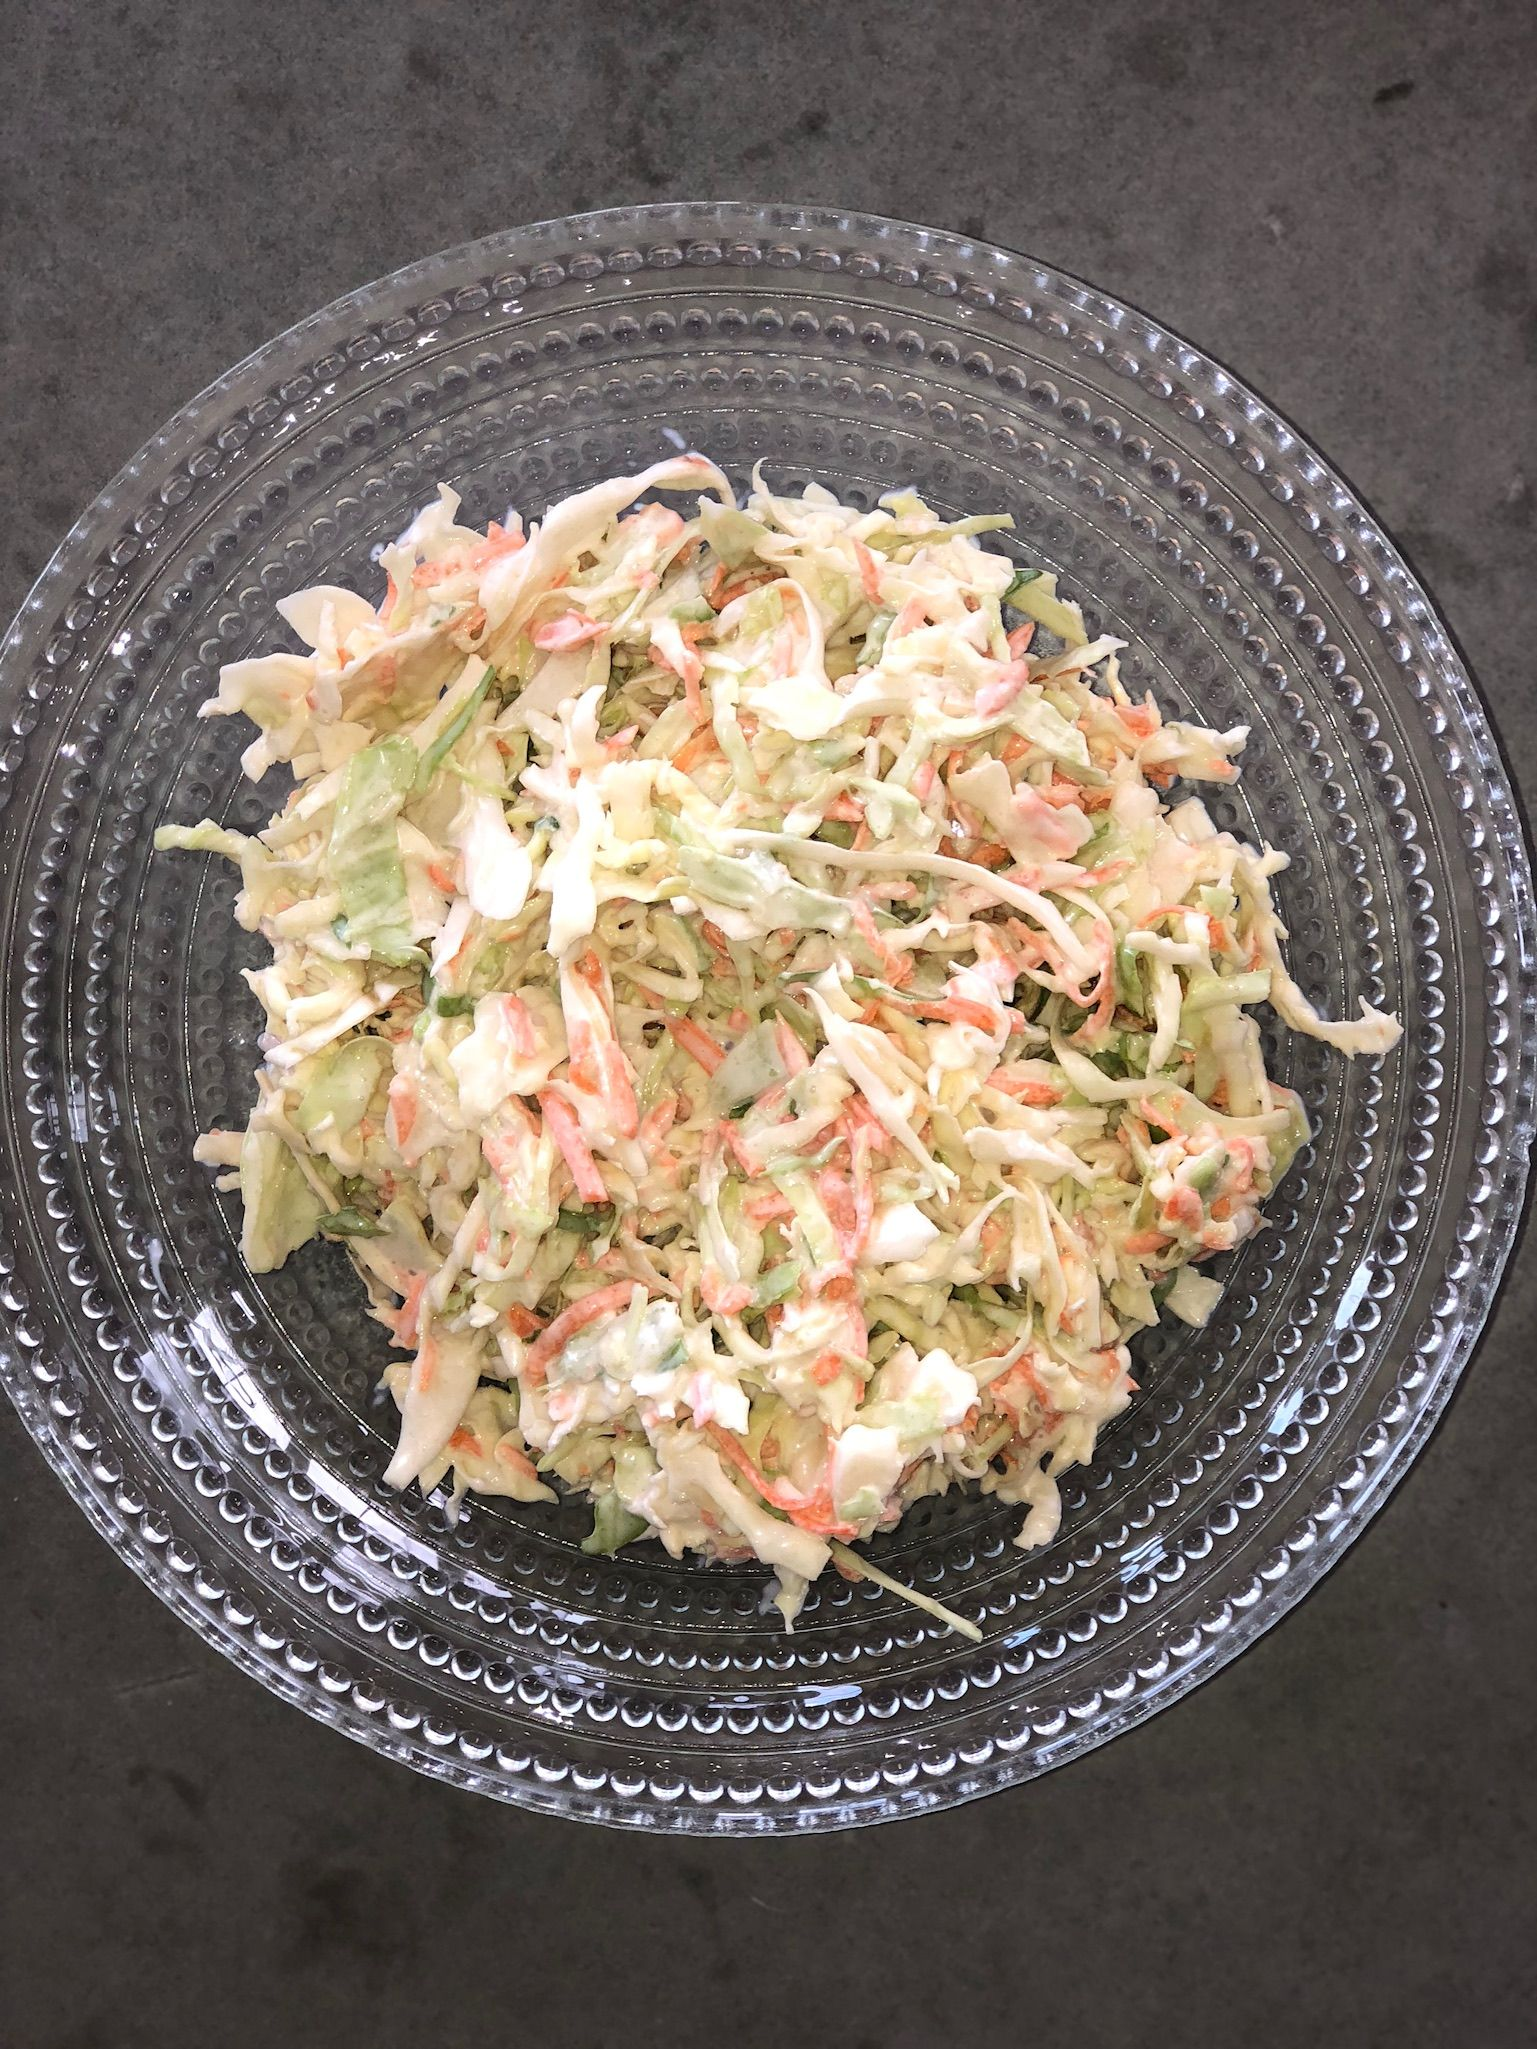 Simple, Delicious Coleslaw Recipe - Homestyle Hunny